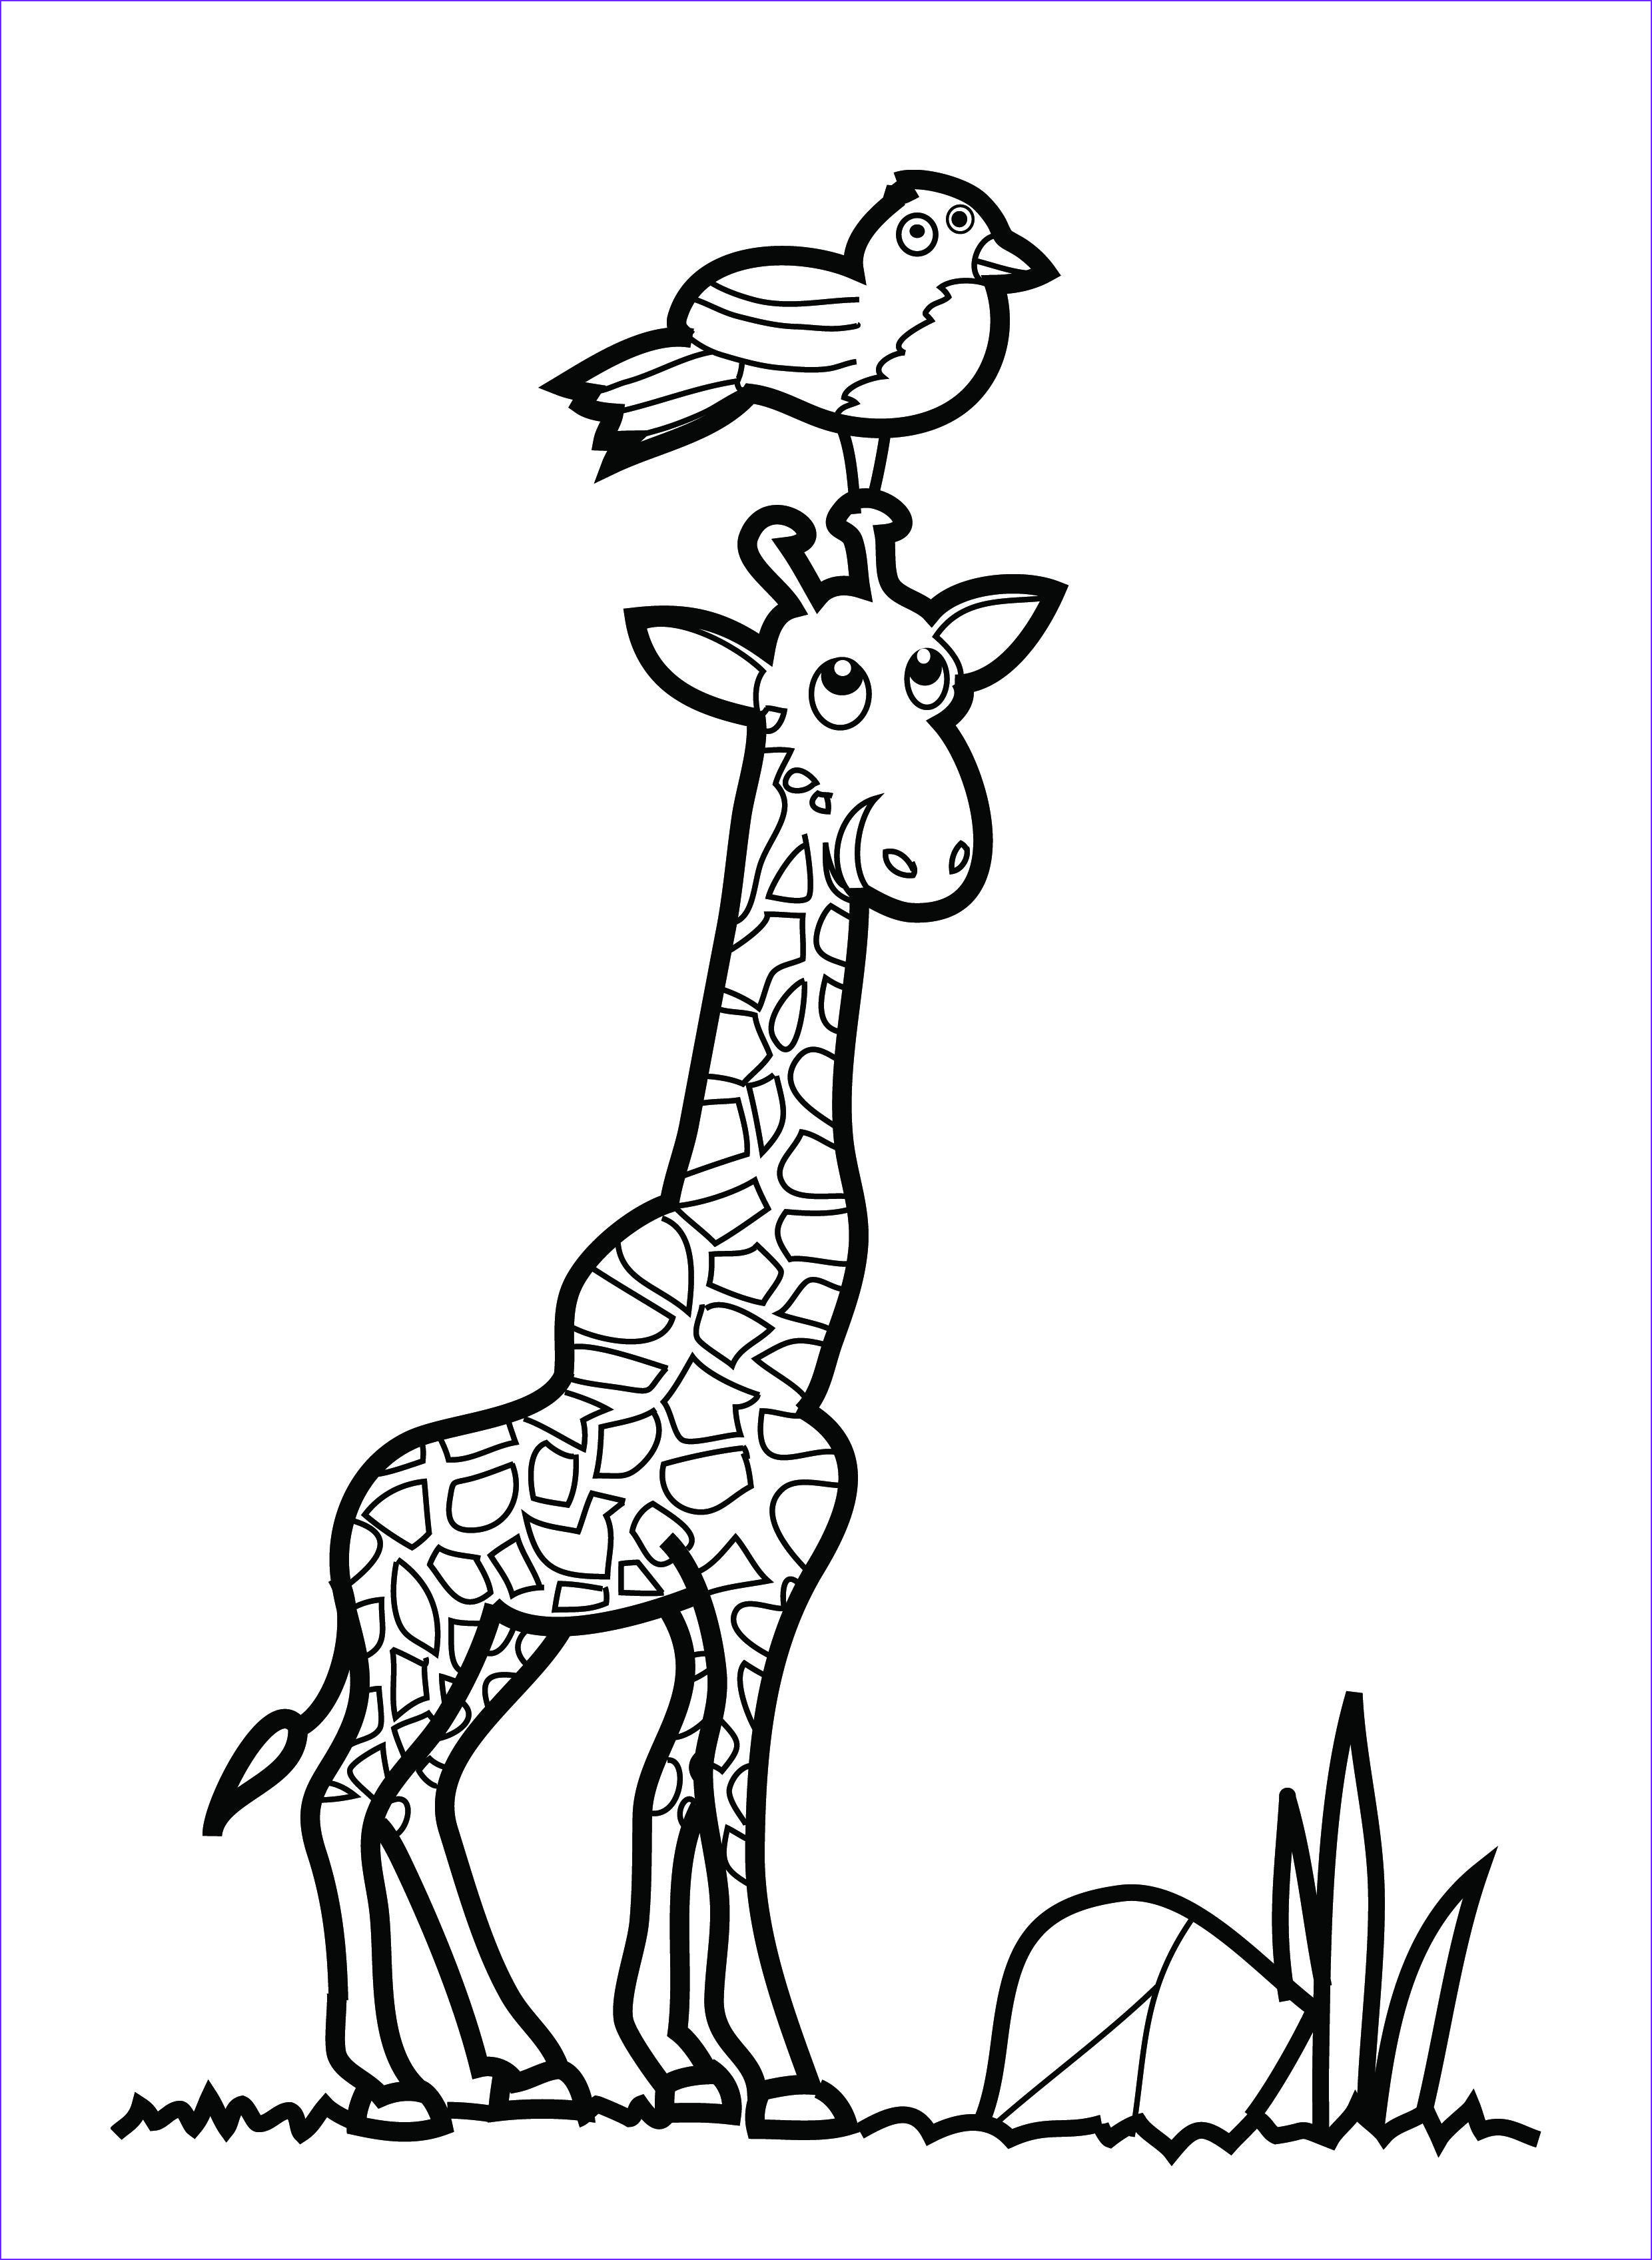 Girraffe Coloring Awesome Stock Free Printable Giraffe Coloring Pages for Kids